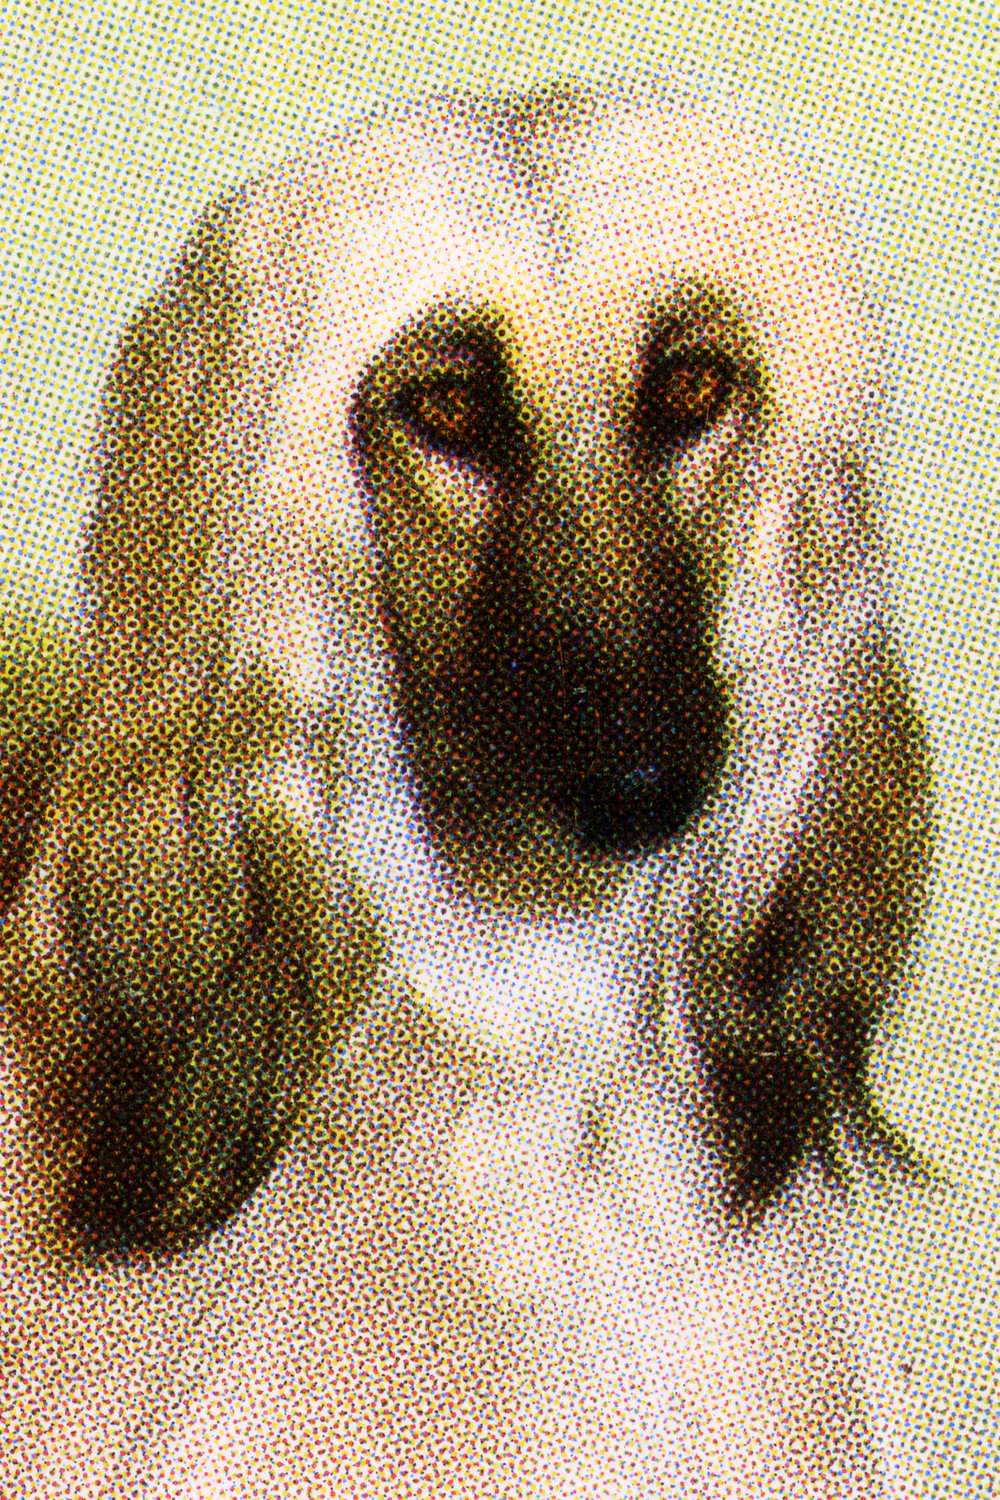 Bucky Miller The Picture of the Afghan Hound.jpg